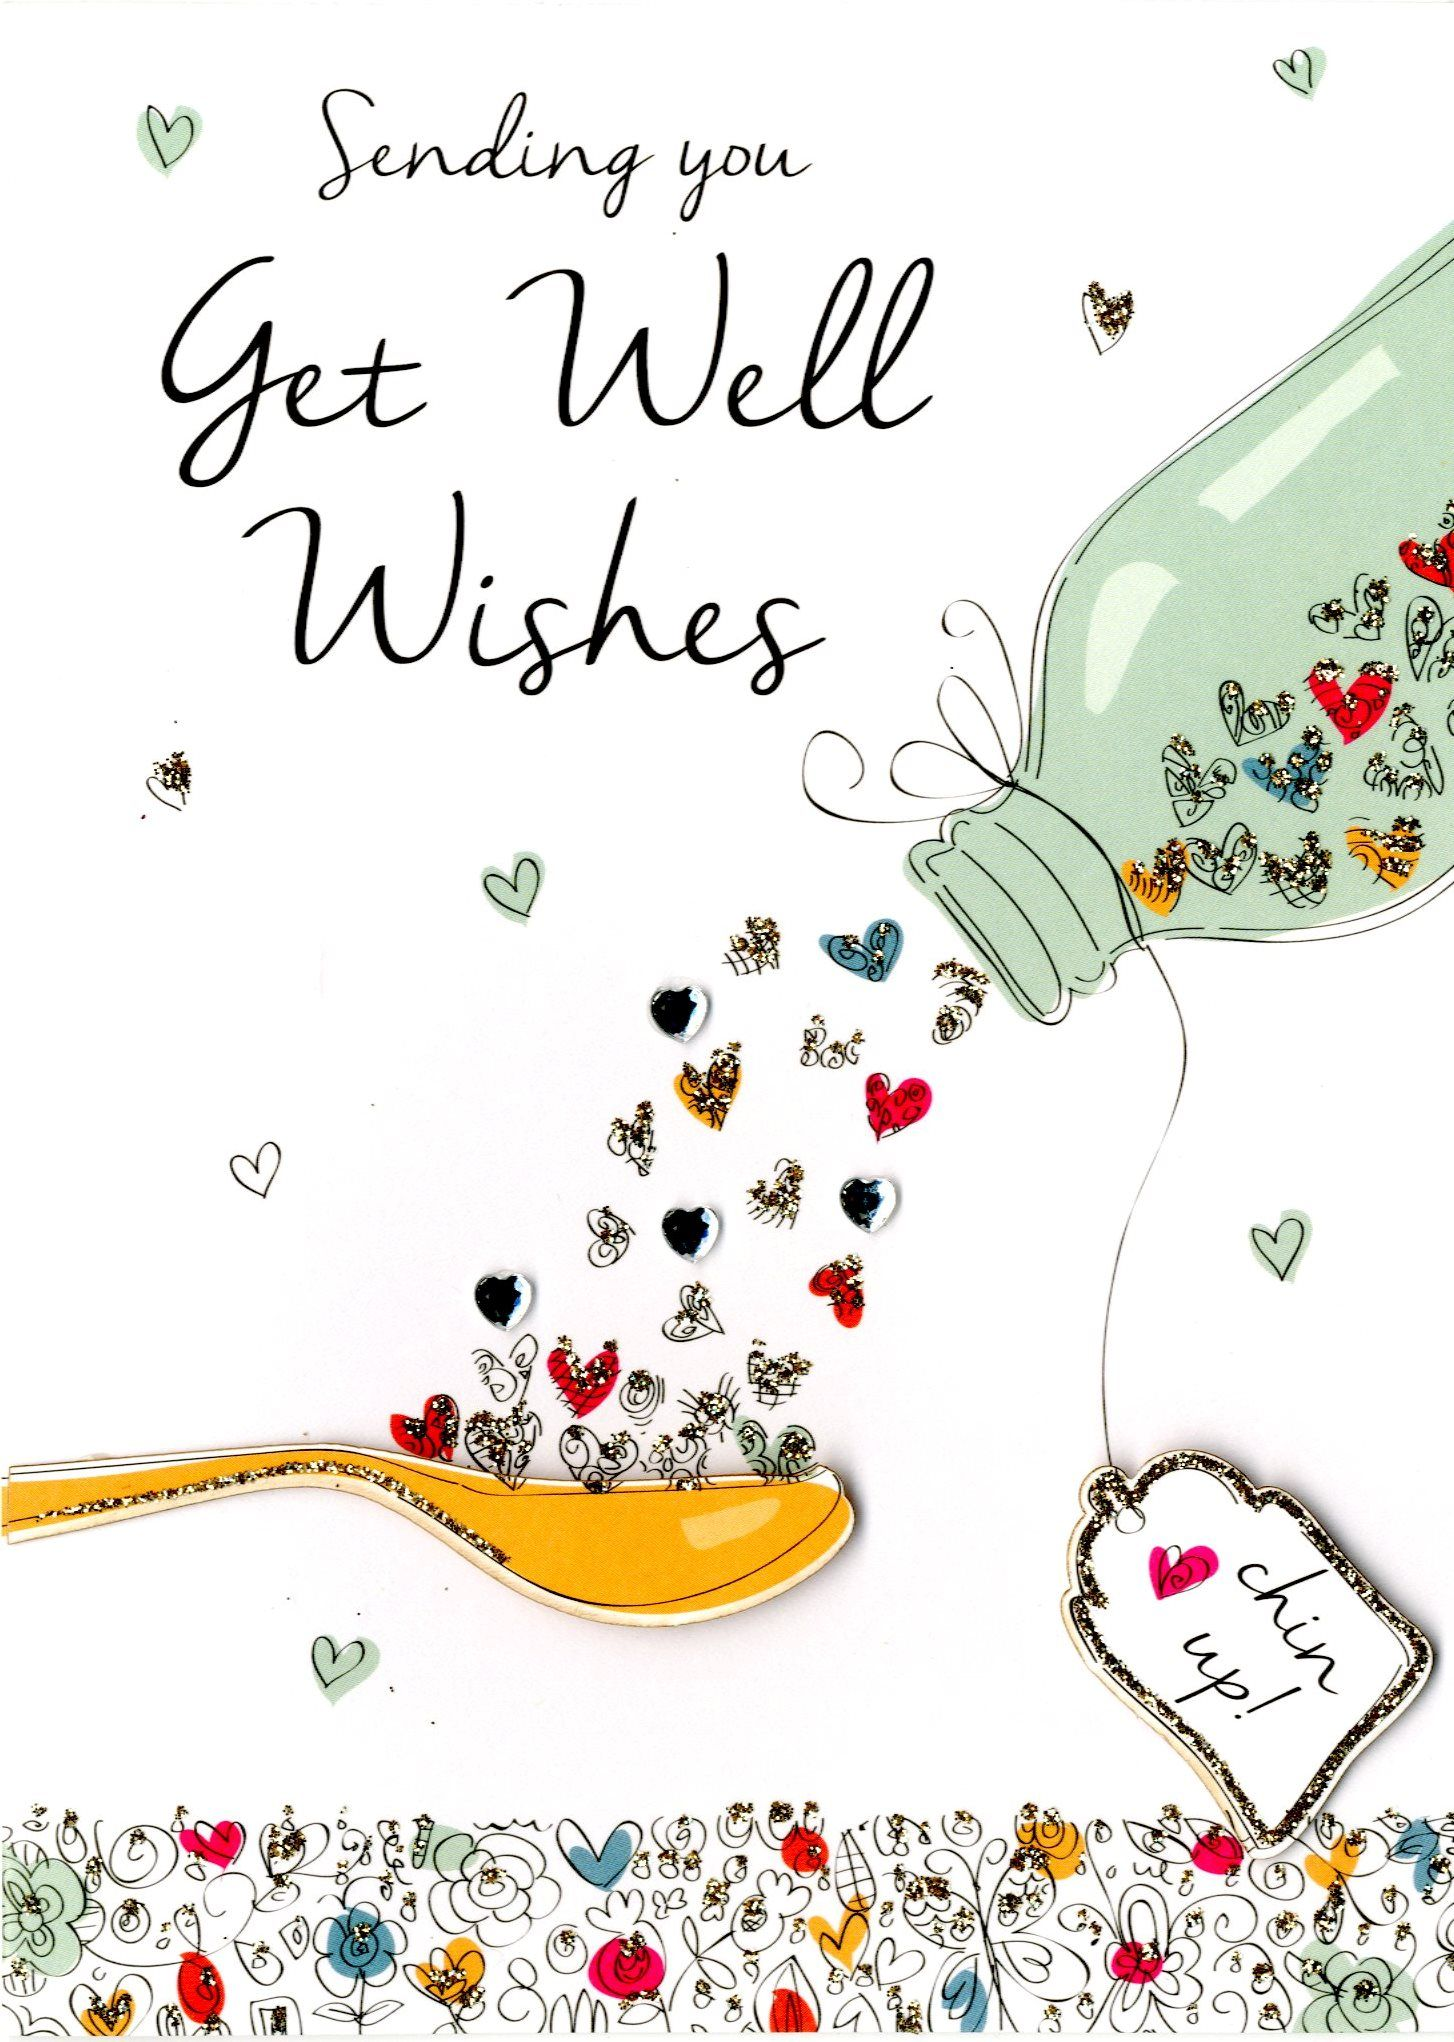 A GET WELL BLESSING GREETING CARD